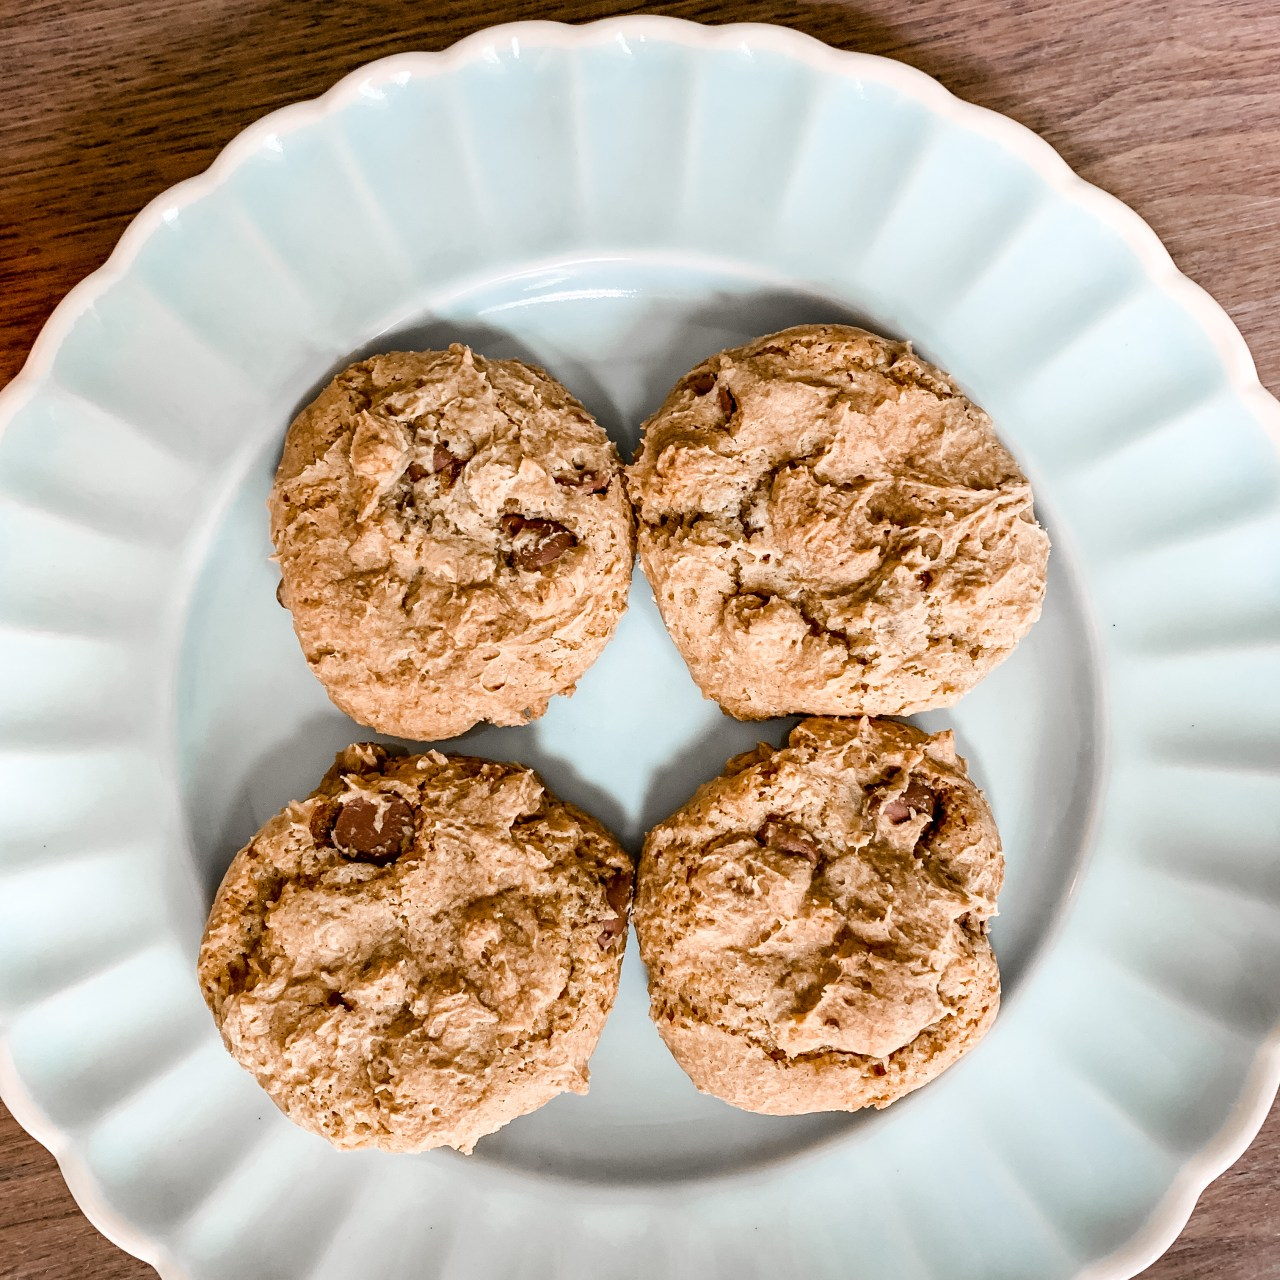 The 9 Trys Chocolate Chip Cookies